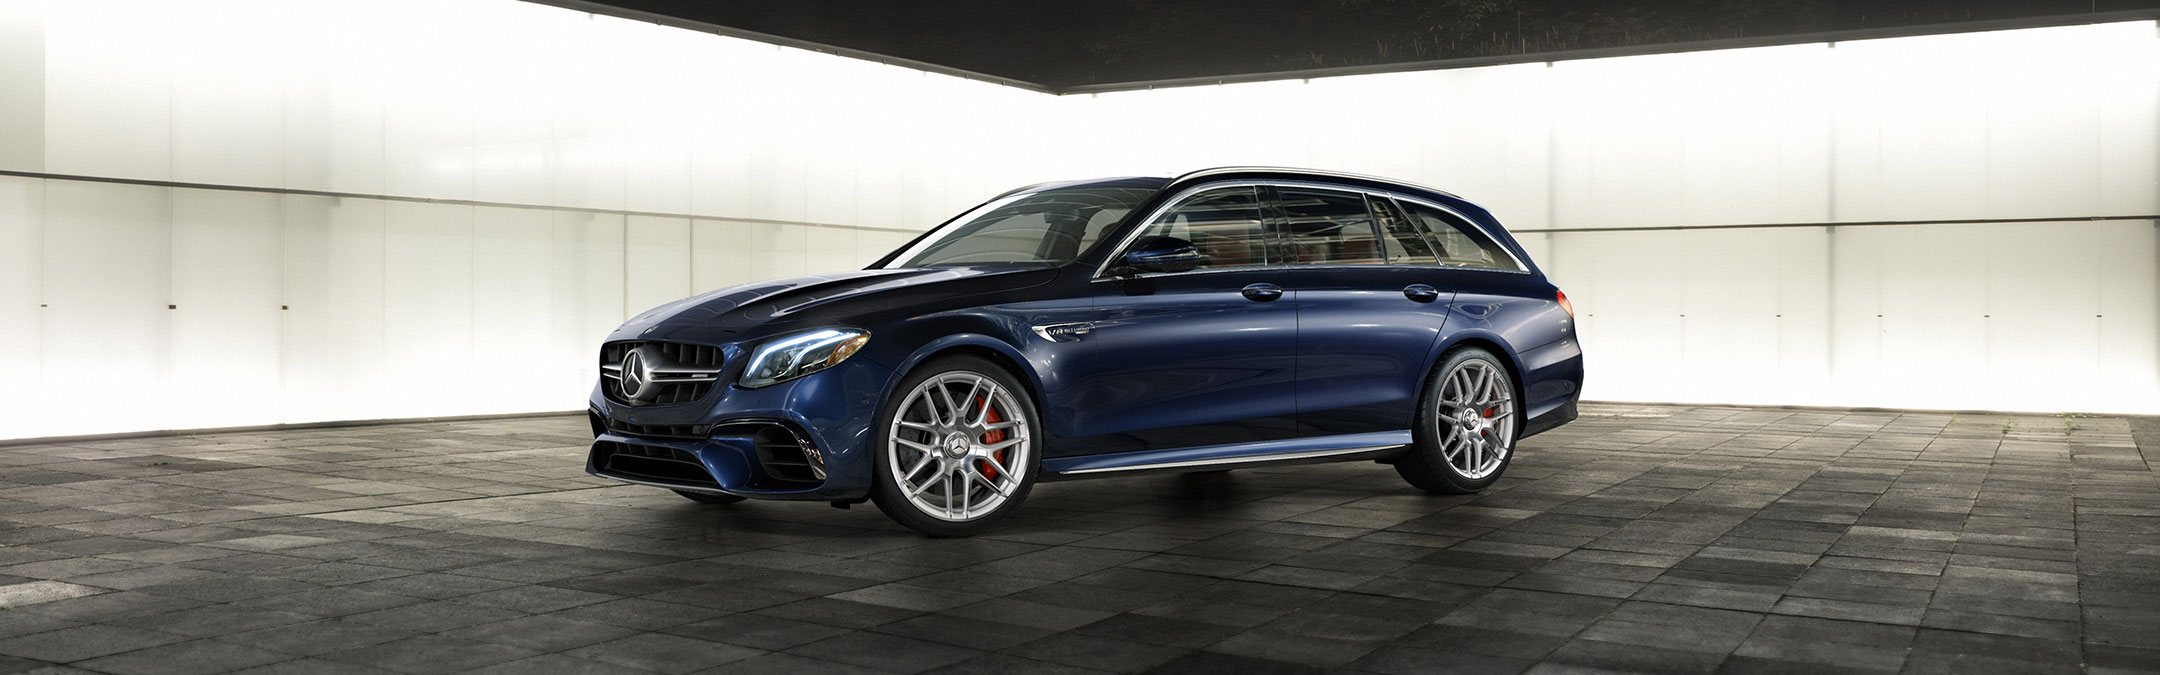 2018 mercedes amg e class wagon mercedes benz. Black Bedroom Furniture Sets. Home Design Ideas